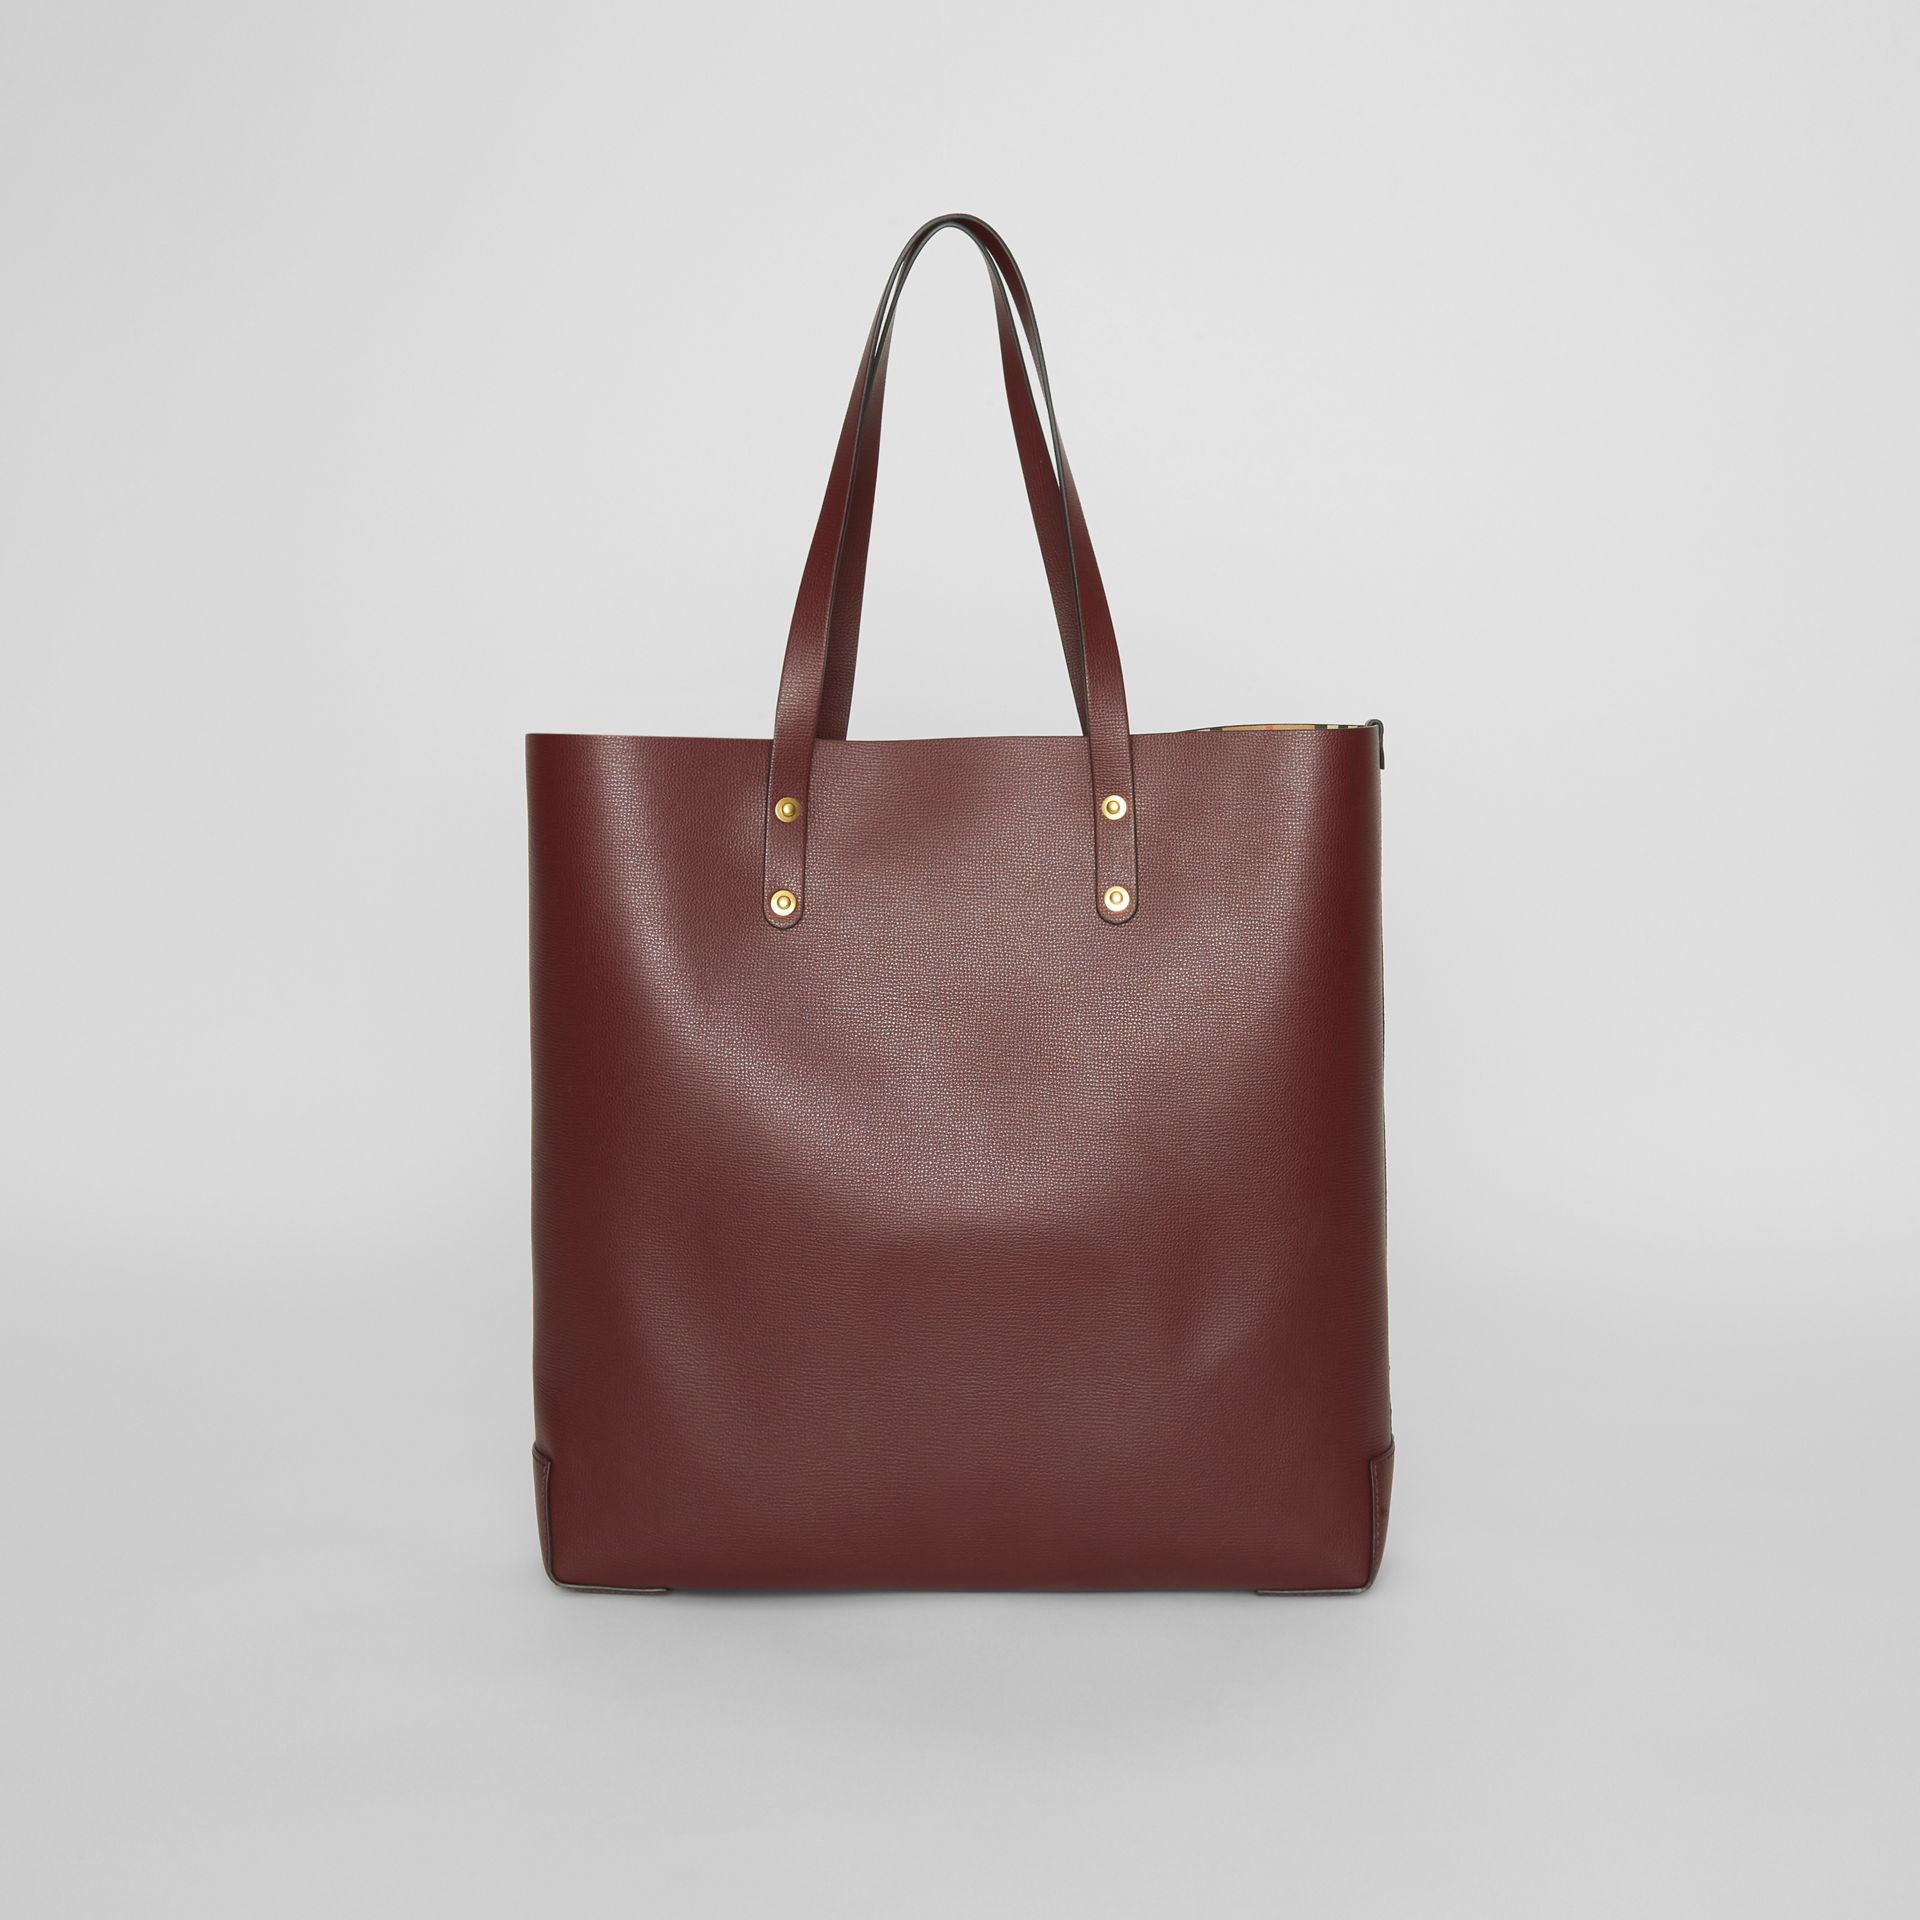 Embossed Crest Leather Tote in Burgundy | Burberry - gallery image 7